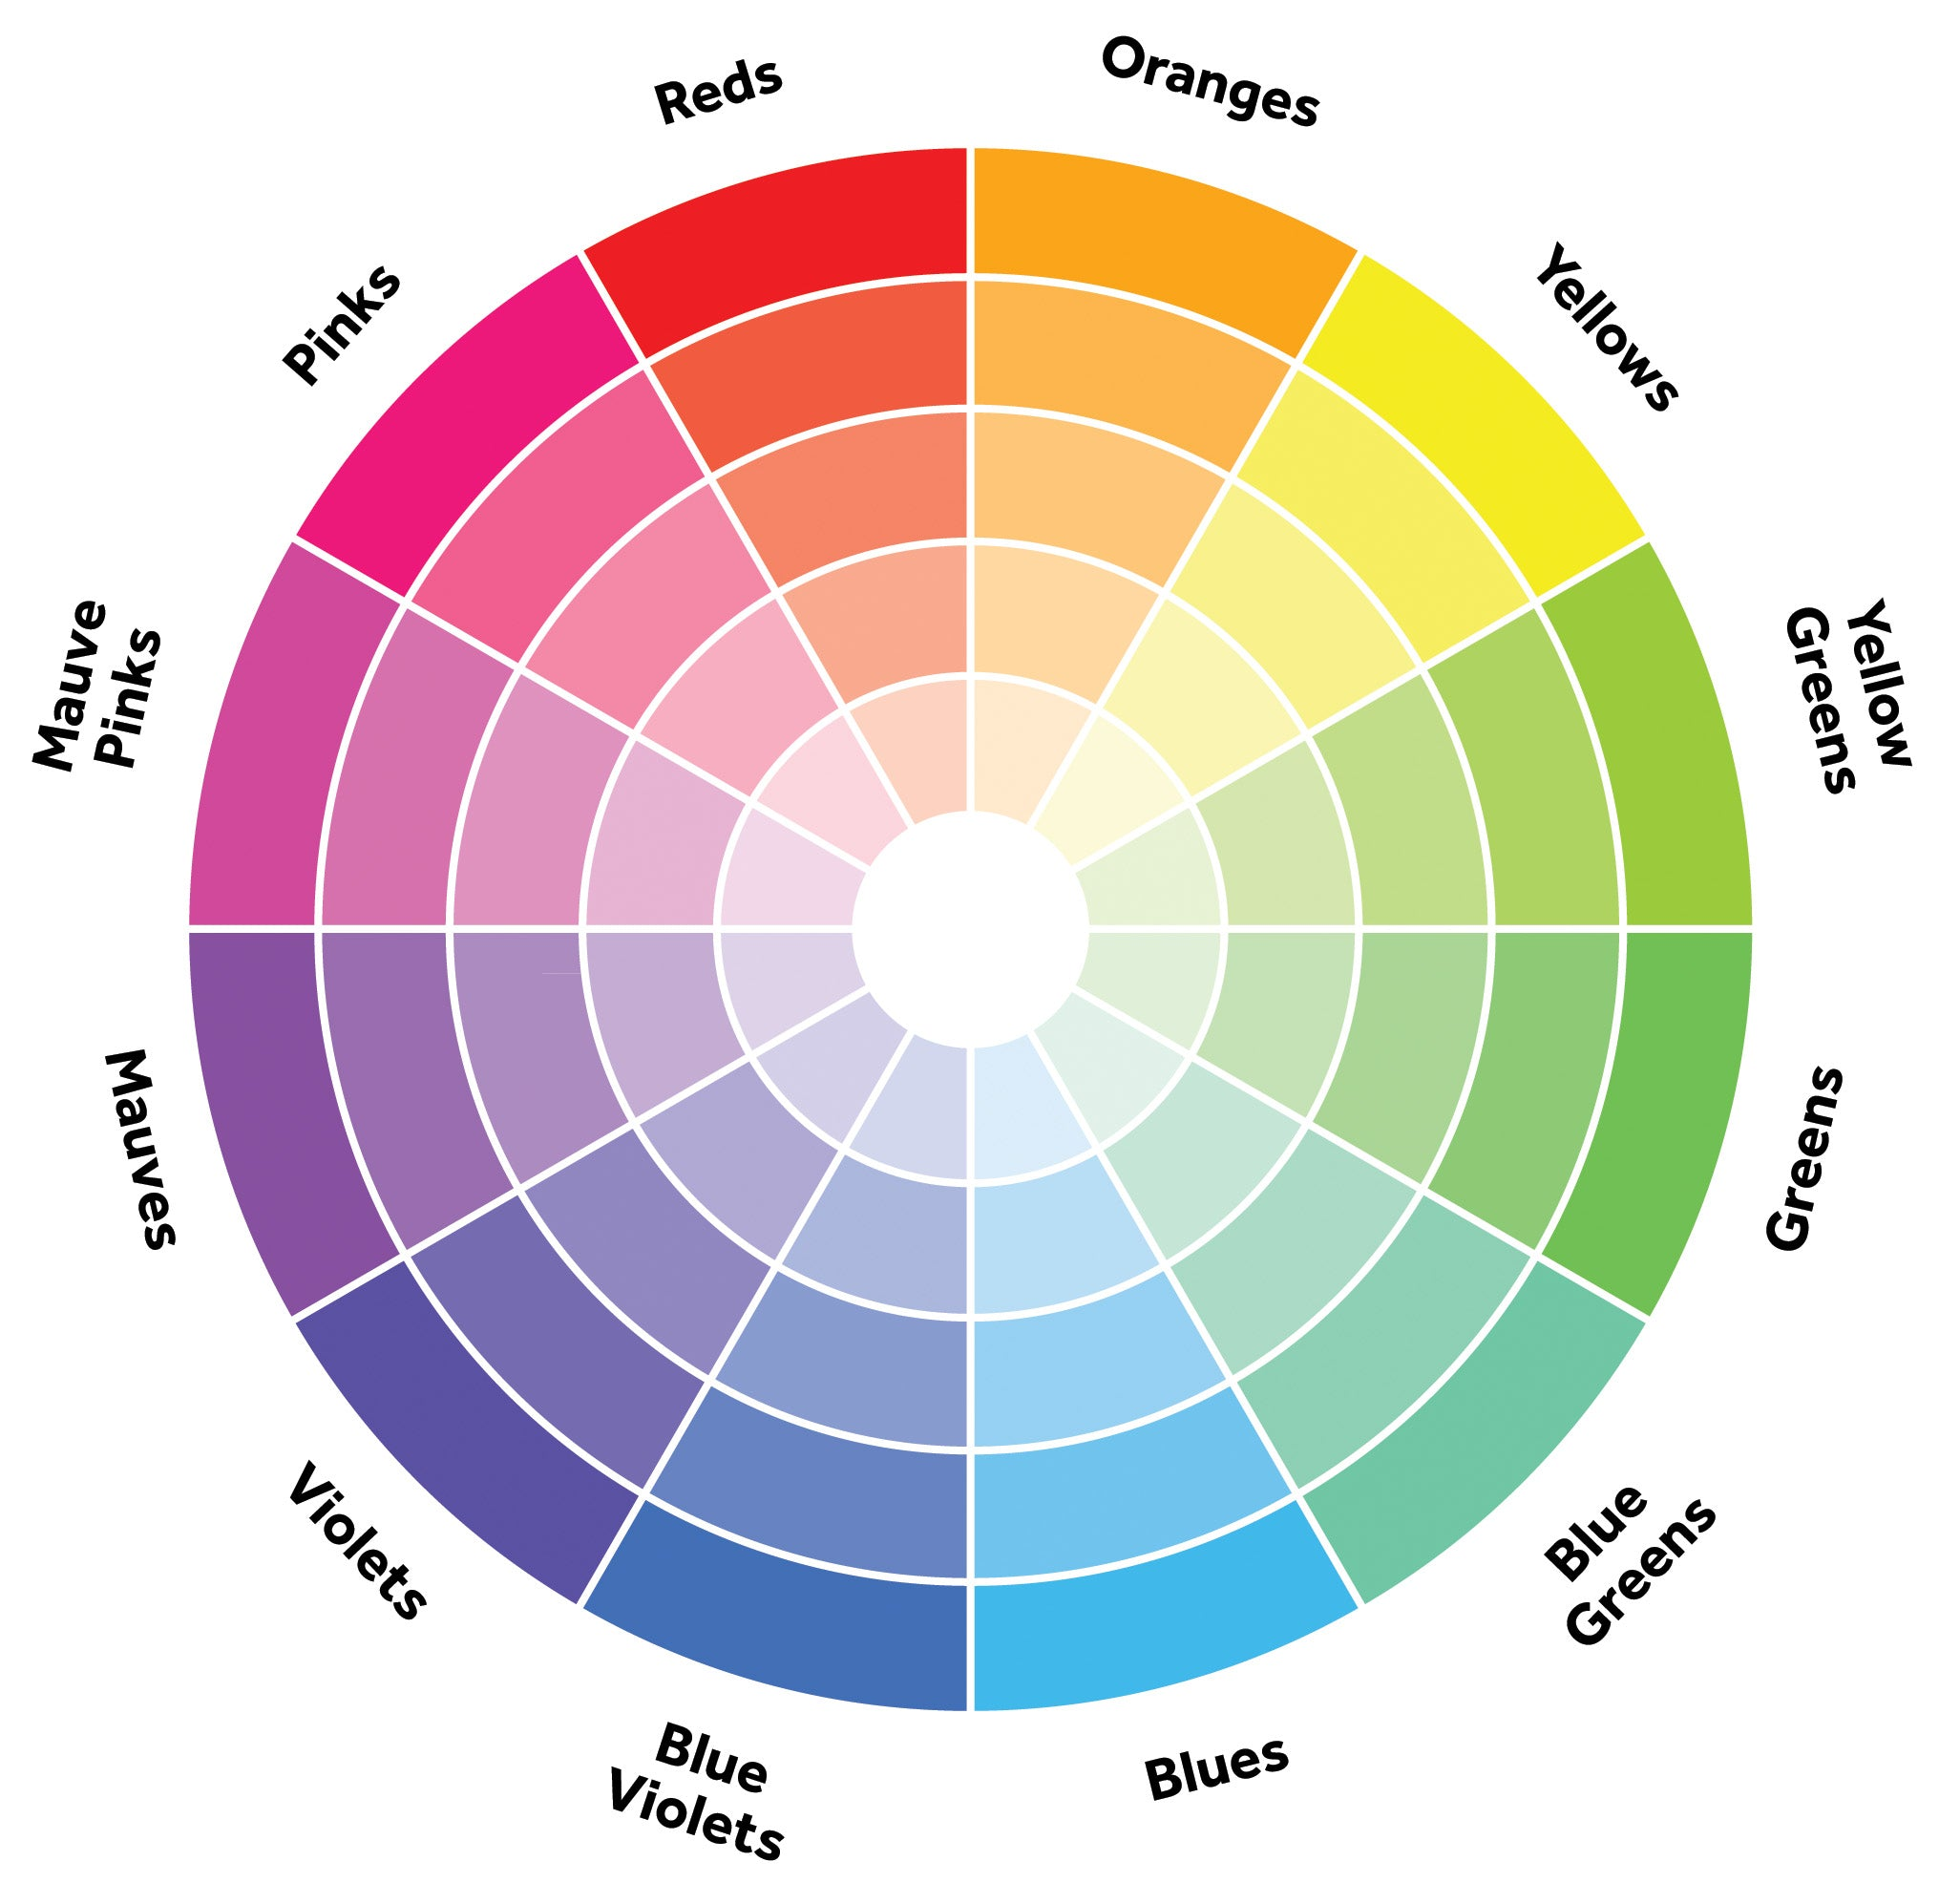 Color Wheel-Are You Blue? Finding the Right Interior Design Color Scheme-Delight In Designs-Stylizing Spaces Blog